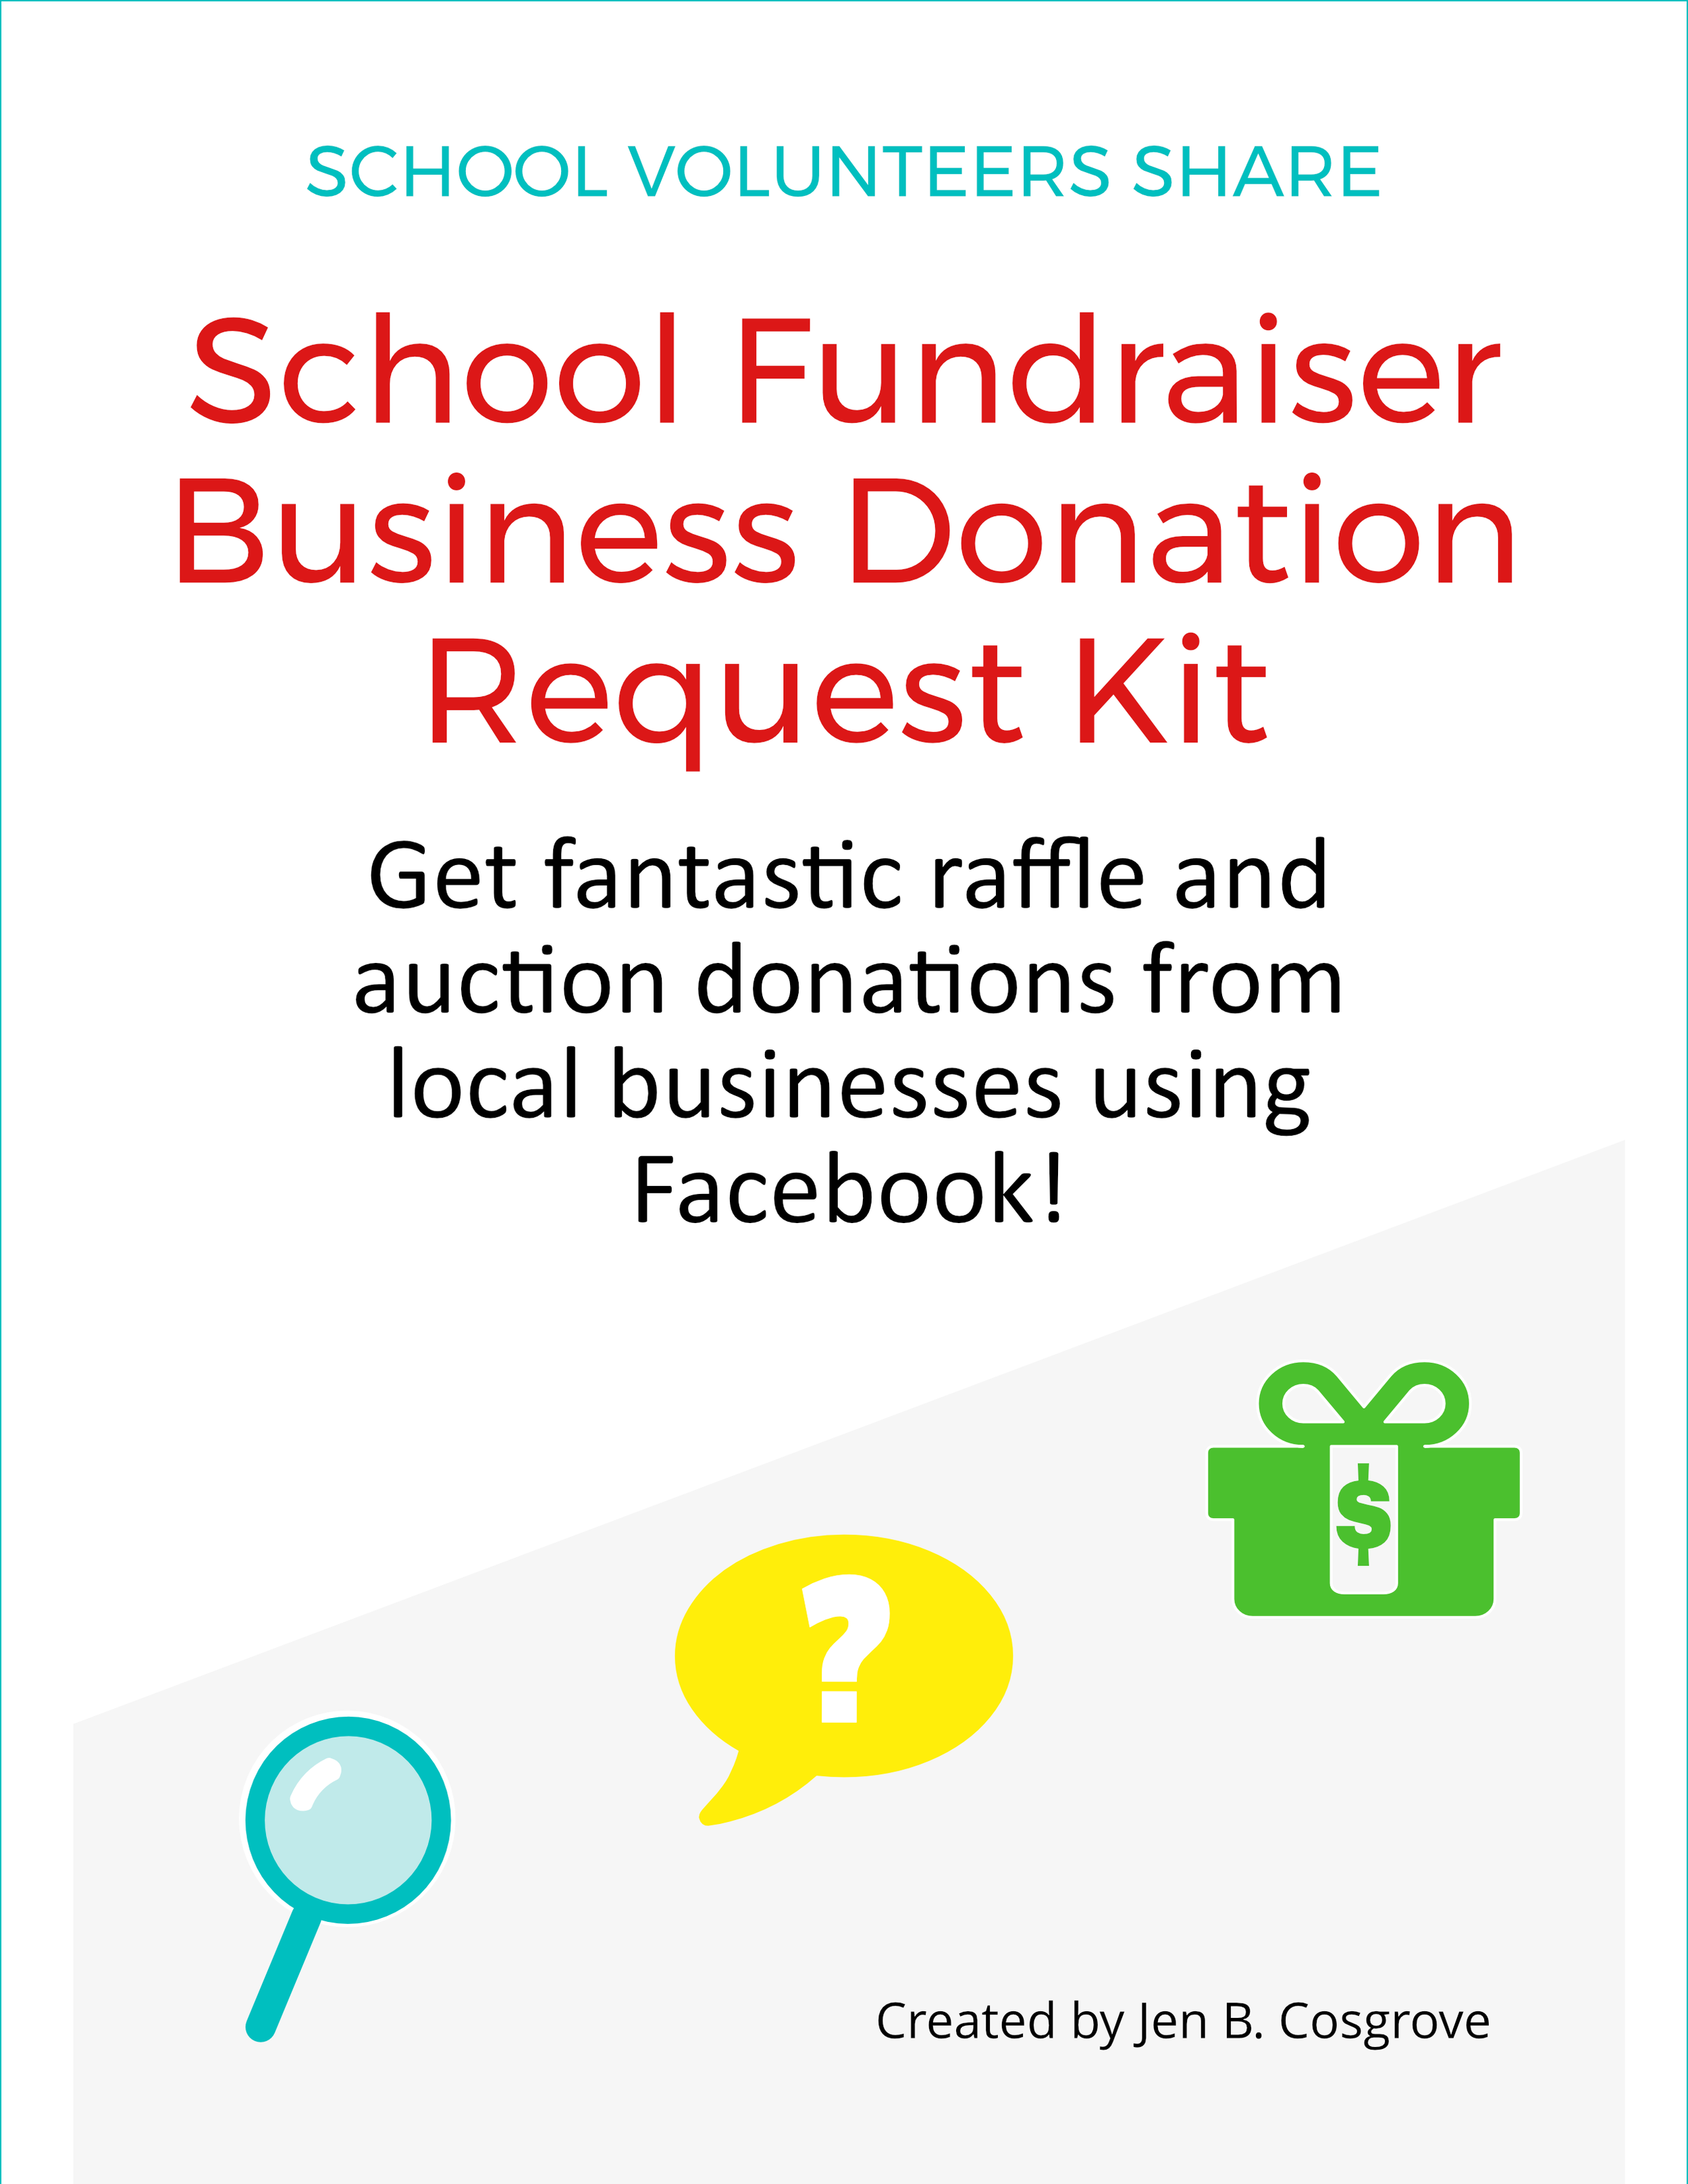 """School Fundraiser Business Donation Request Kit  Get fantastic raffle and auction donations from local businesses the easy way using Facebook!  Perfect for school volunteers who  Hate asking businesses for donations , especially in person or over the phone.  Don't have time to drive around  asking businesses for donations hoping they'll say Yes.  Need fantastic prizes for raffles or auctions  or fundraising incentives for fun runs and """"thons,"""" product fundraisers, direct donation fundraisers, and more."""